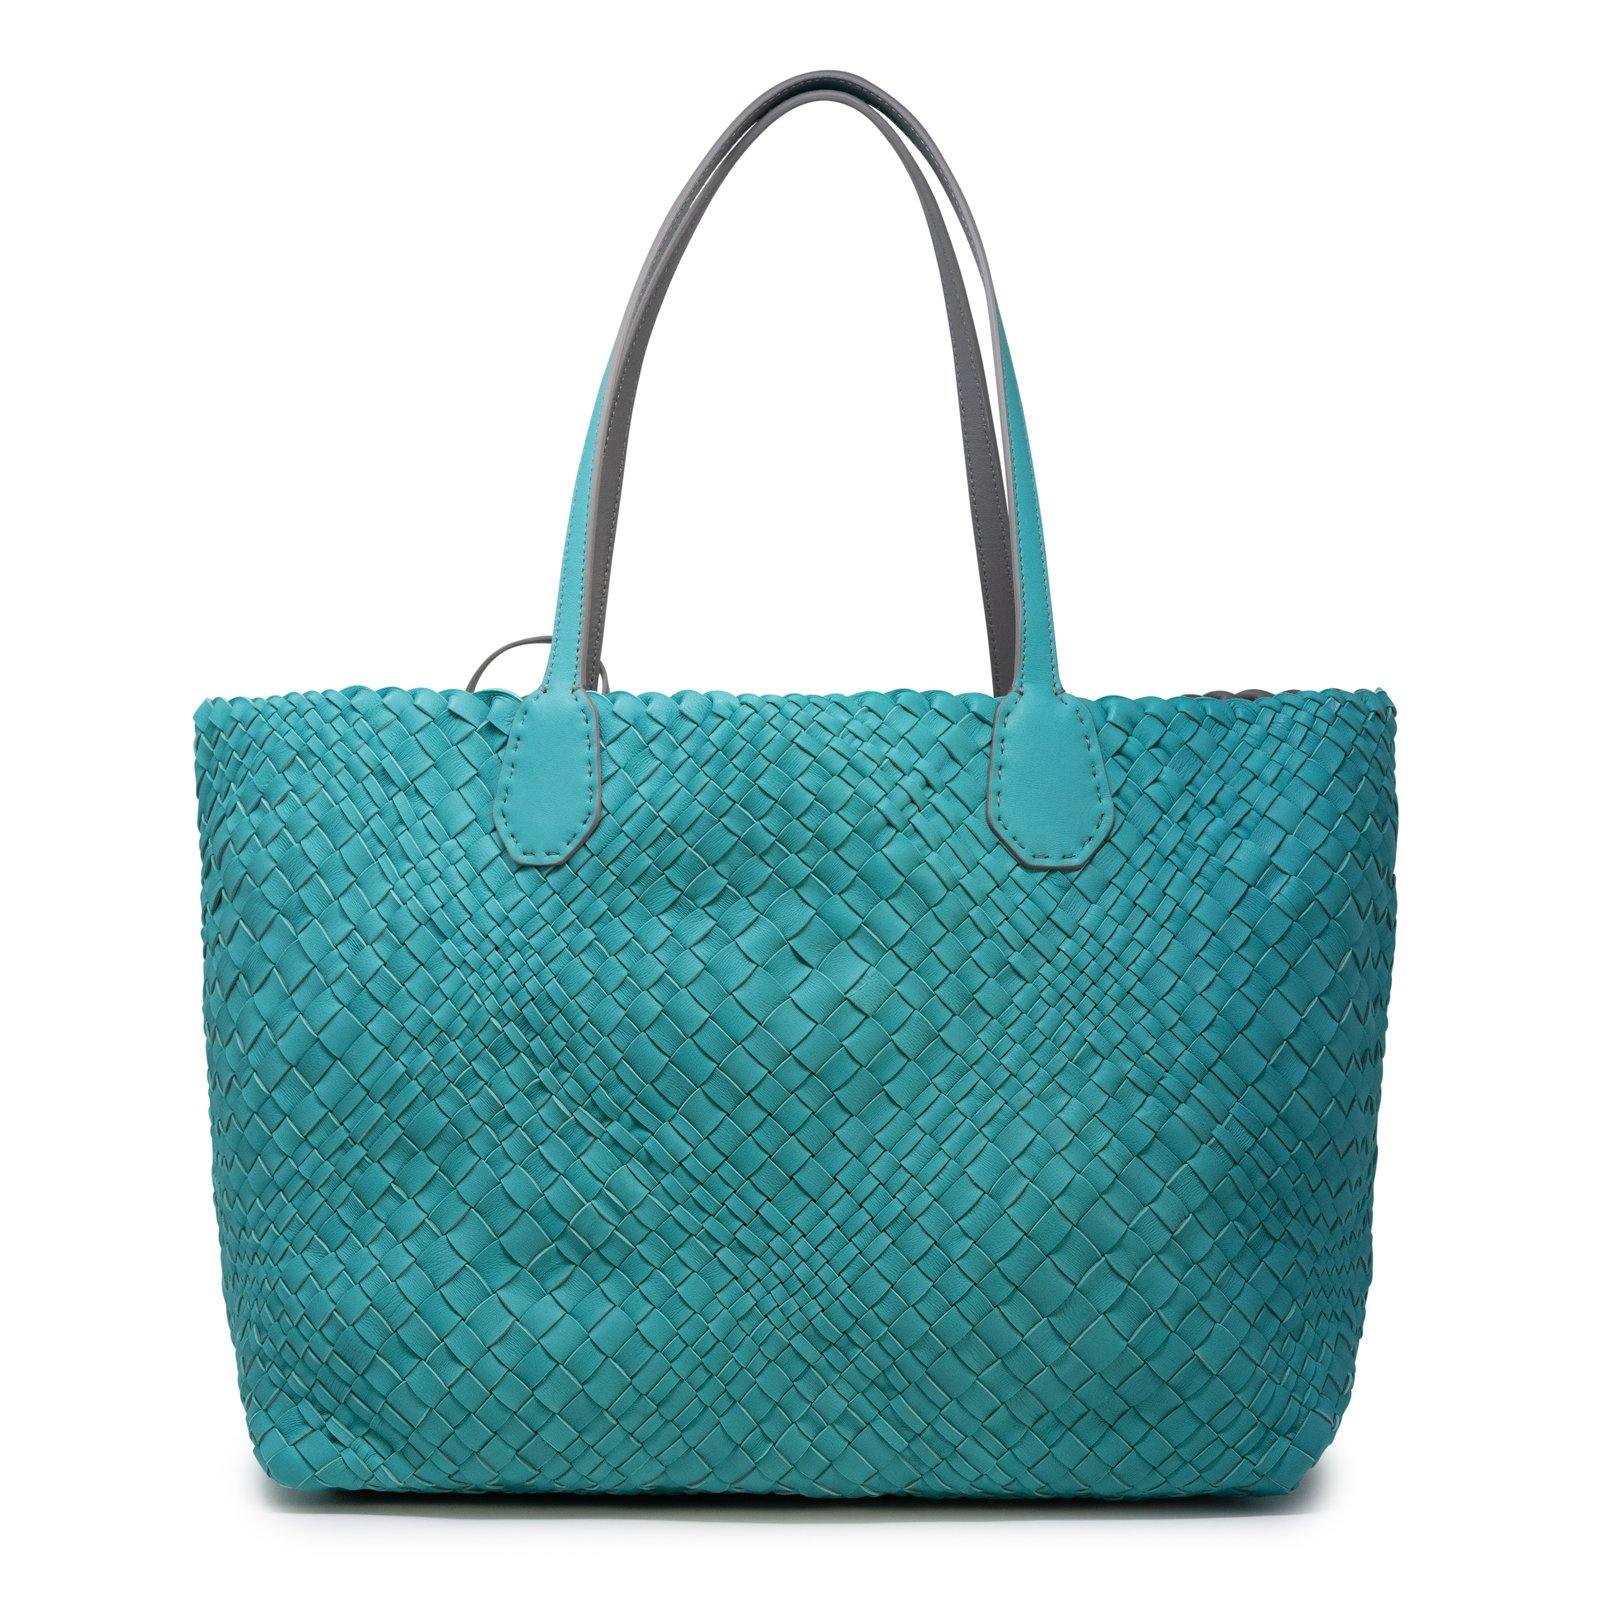 Women Leather Intreccio Optical Reversible Bag in Blue Marine and Grey - Jennifer Tattanelli